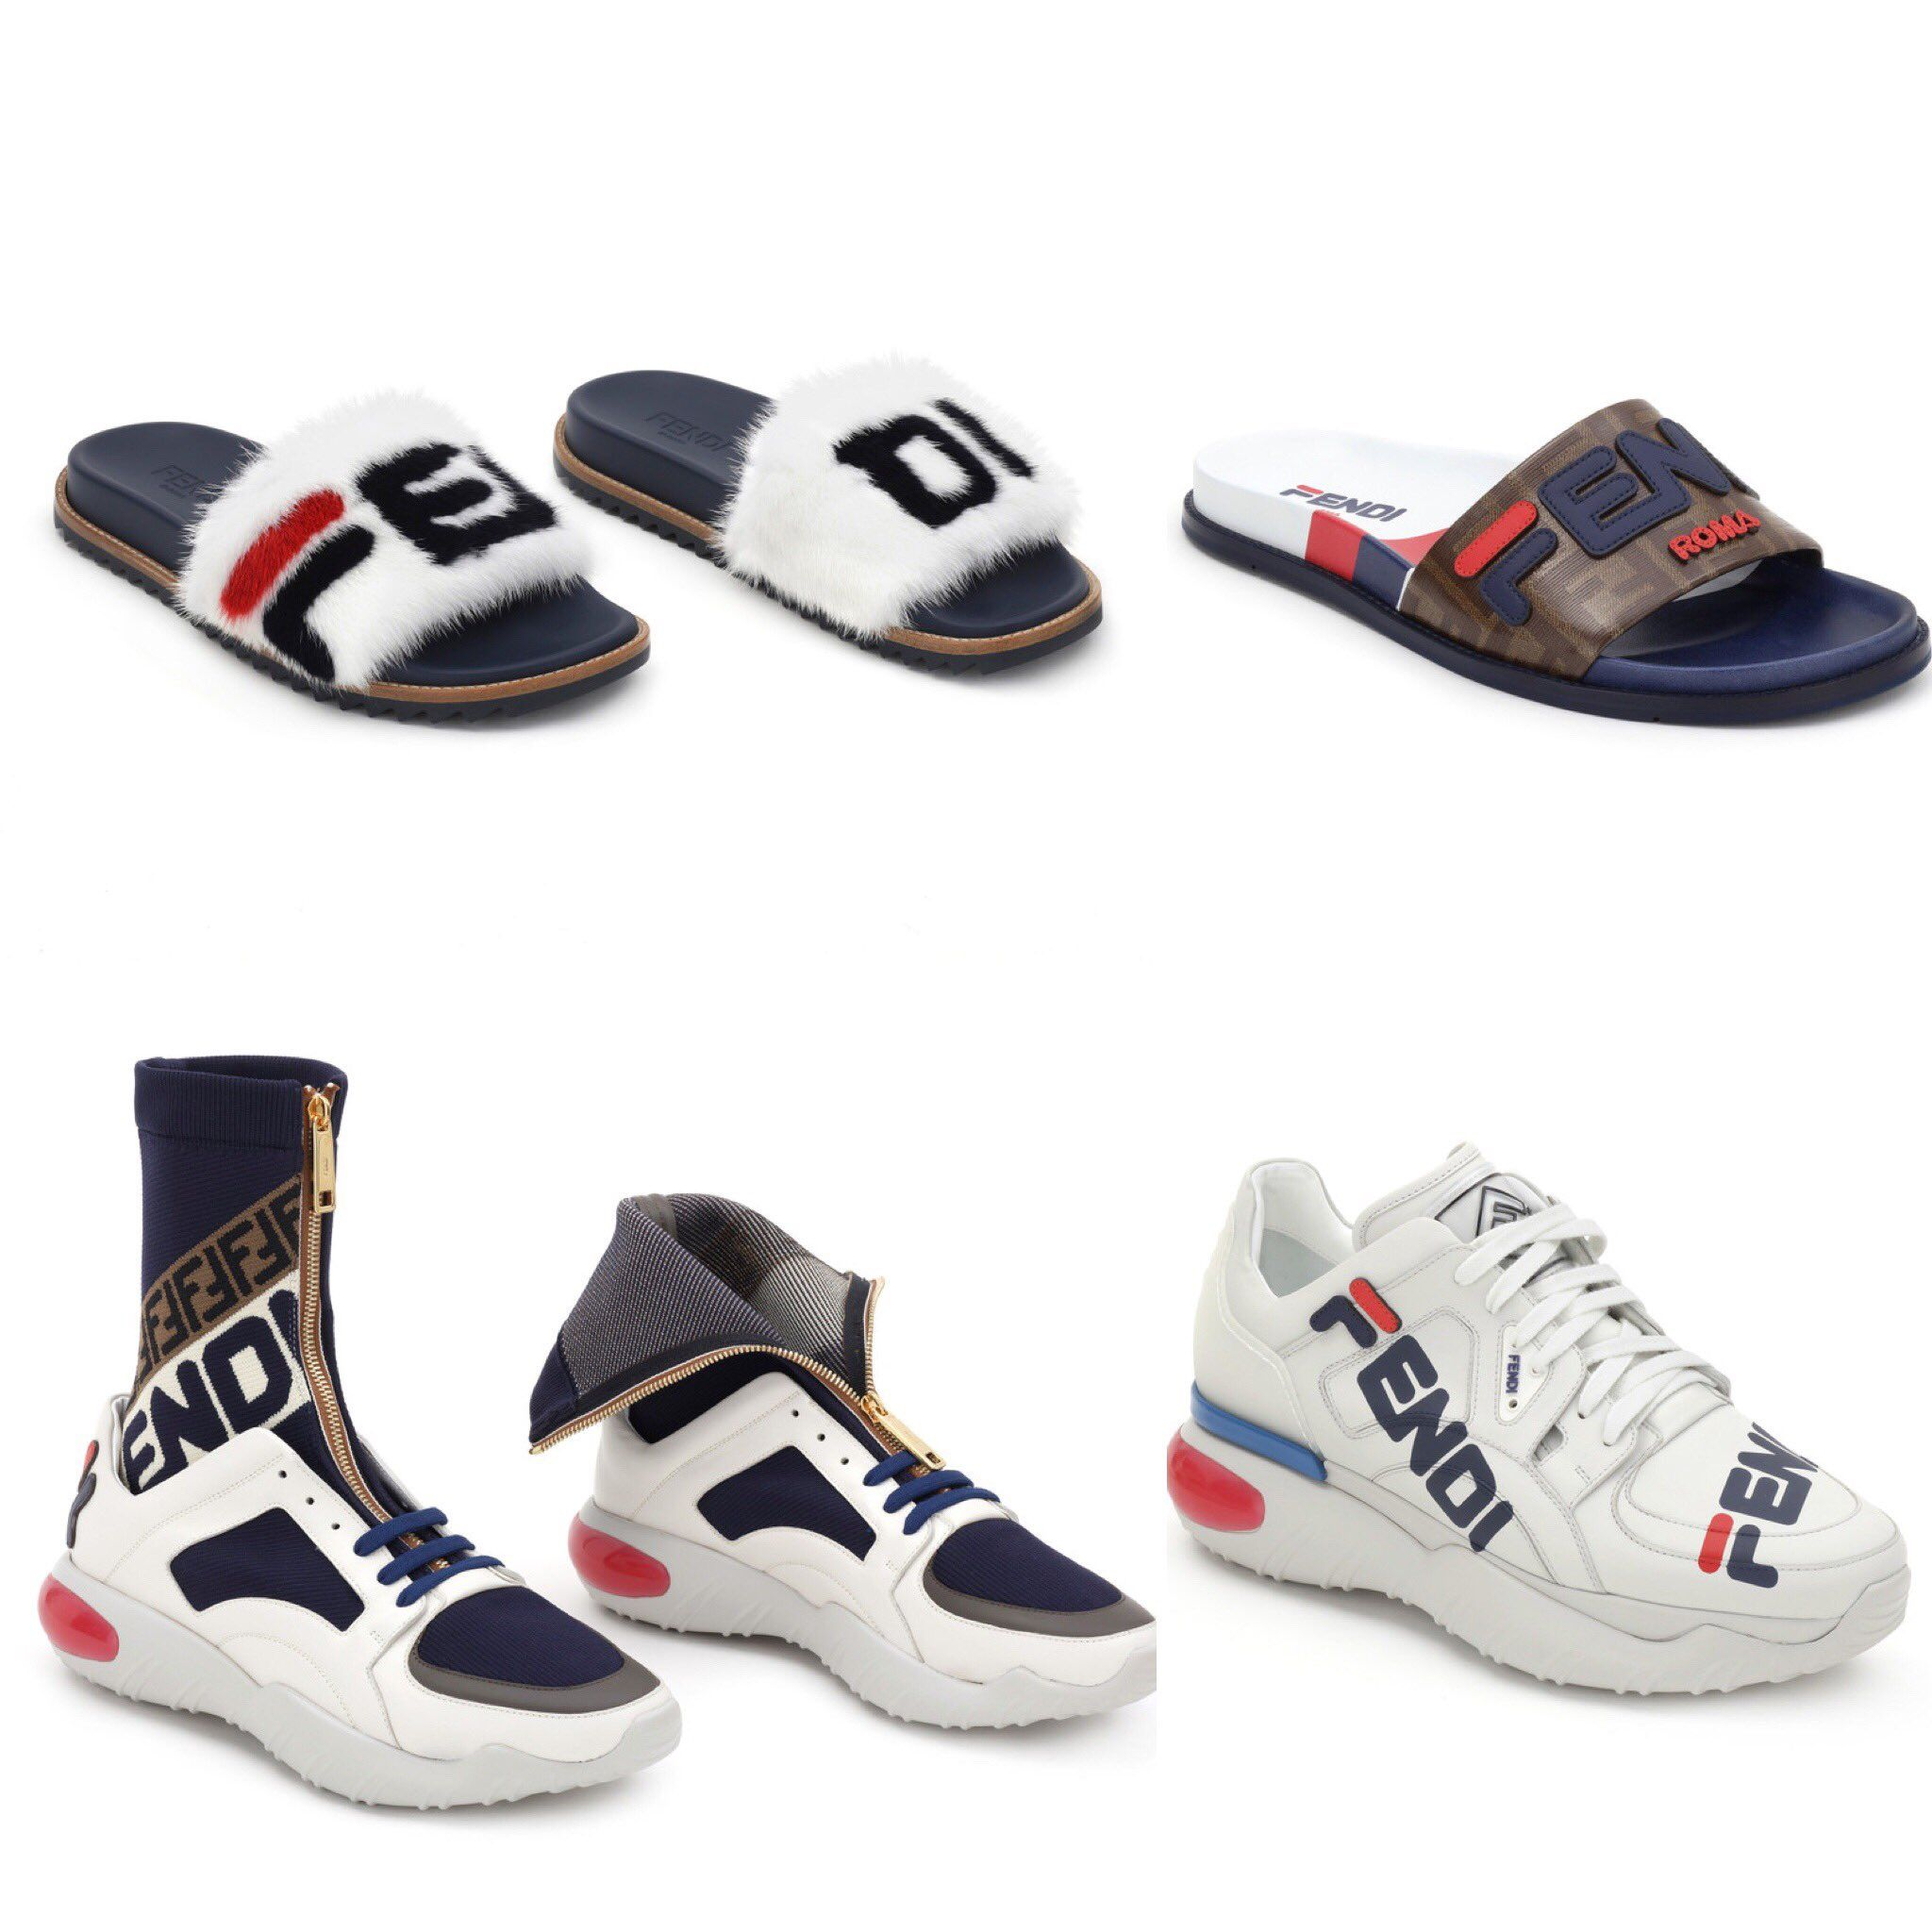 new arrival 1d9c8 1c3a0 models daily on Twitter